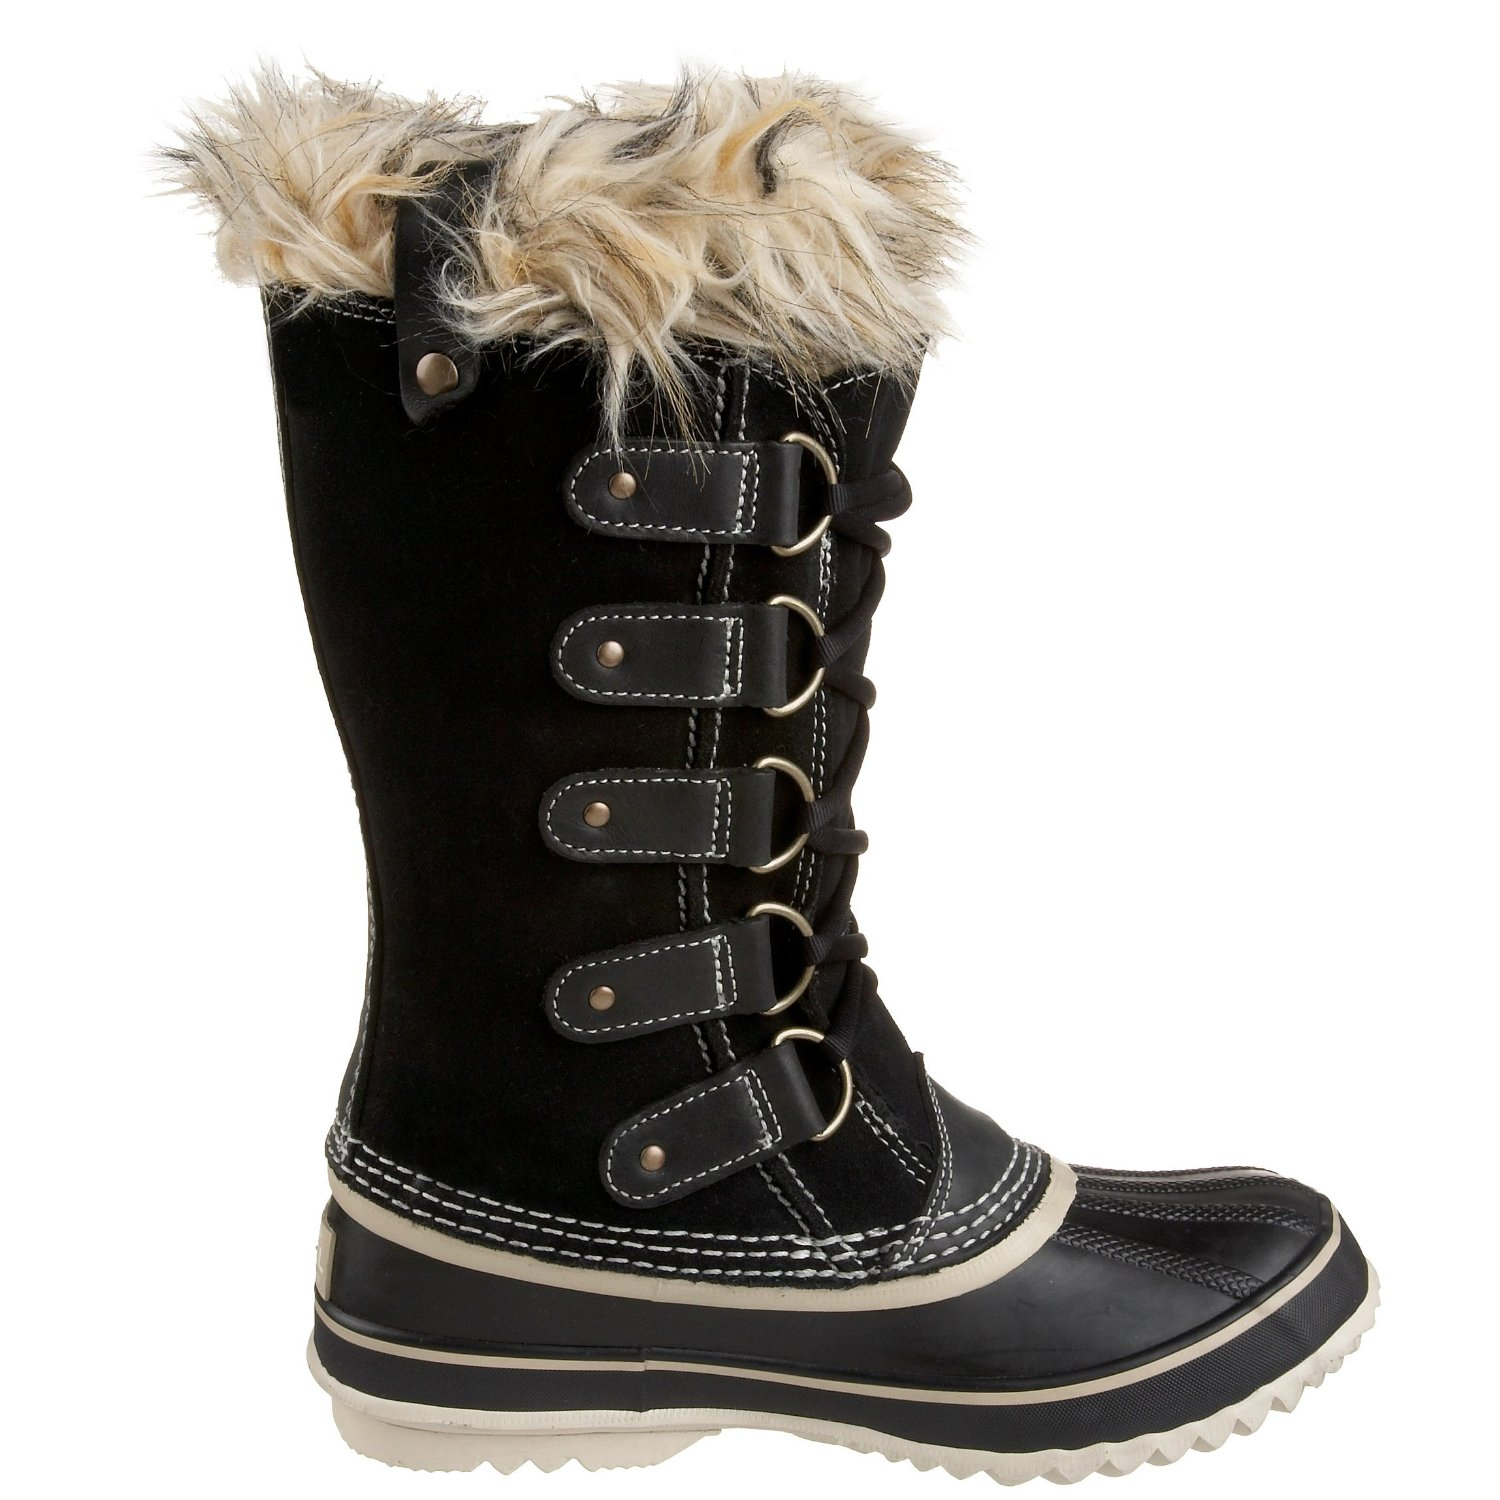 Review of - Sorel Women's Joan Of Arctic Boot